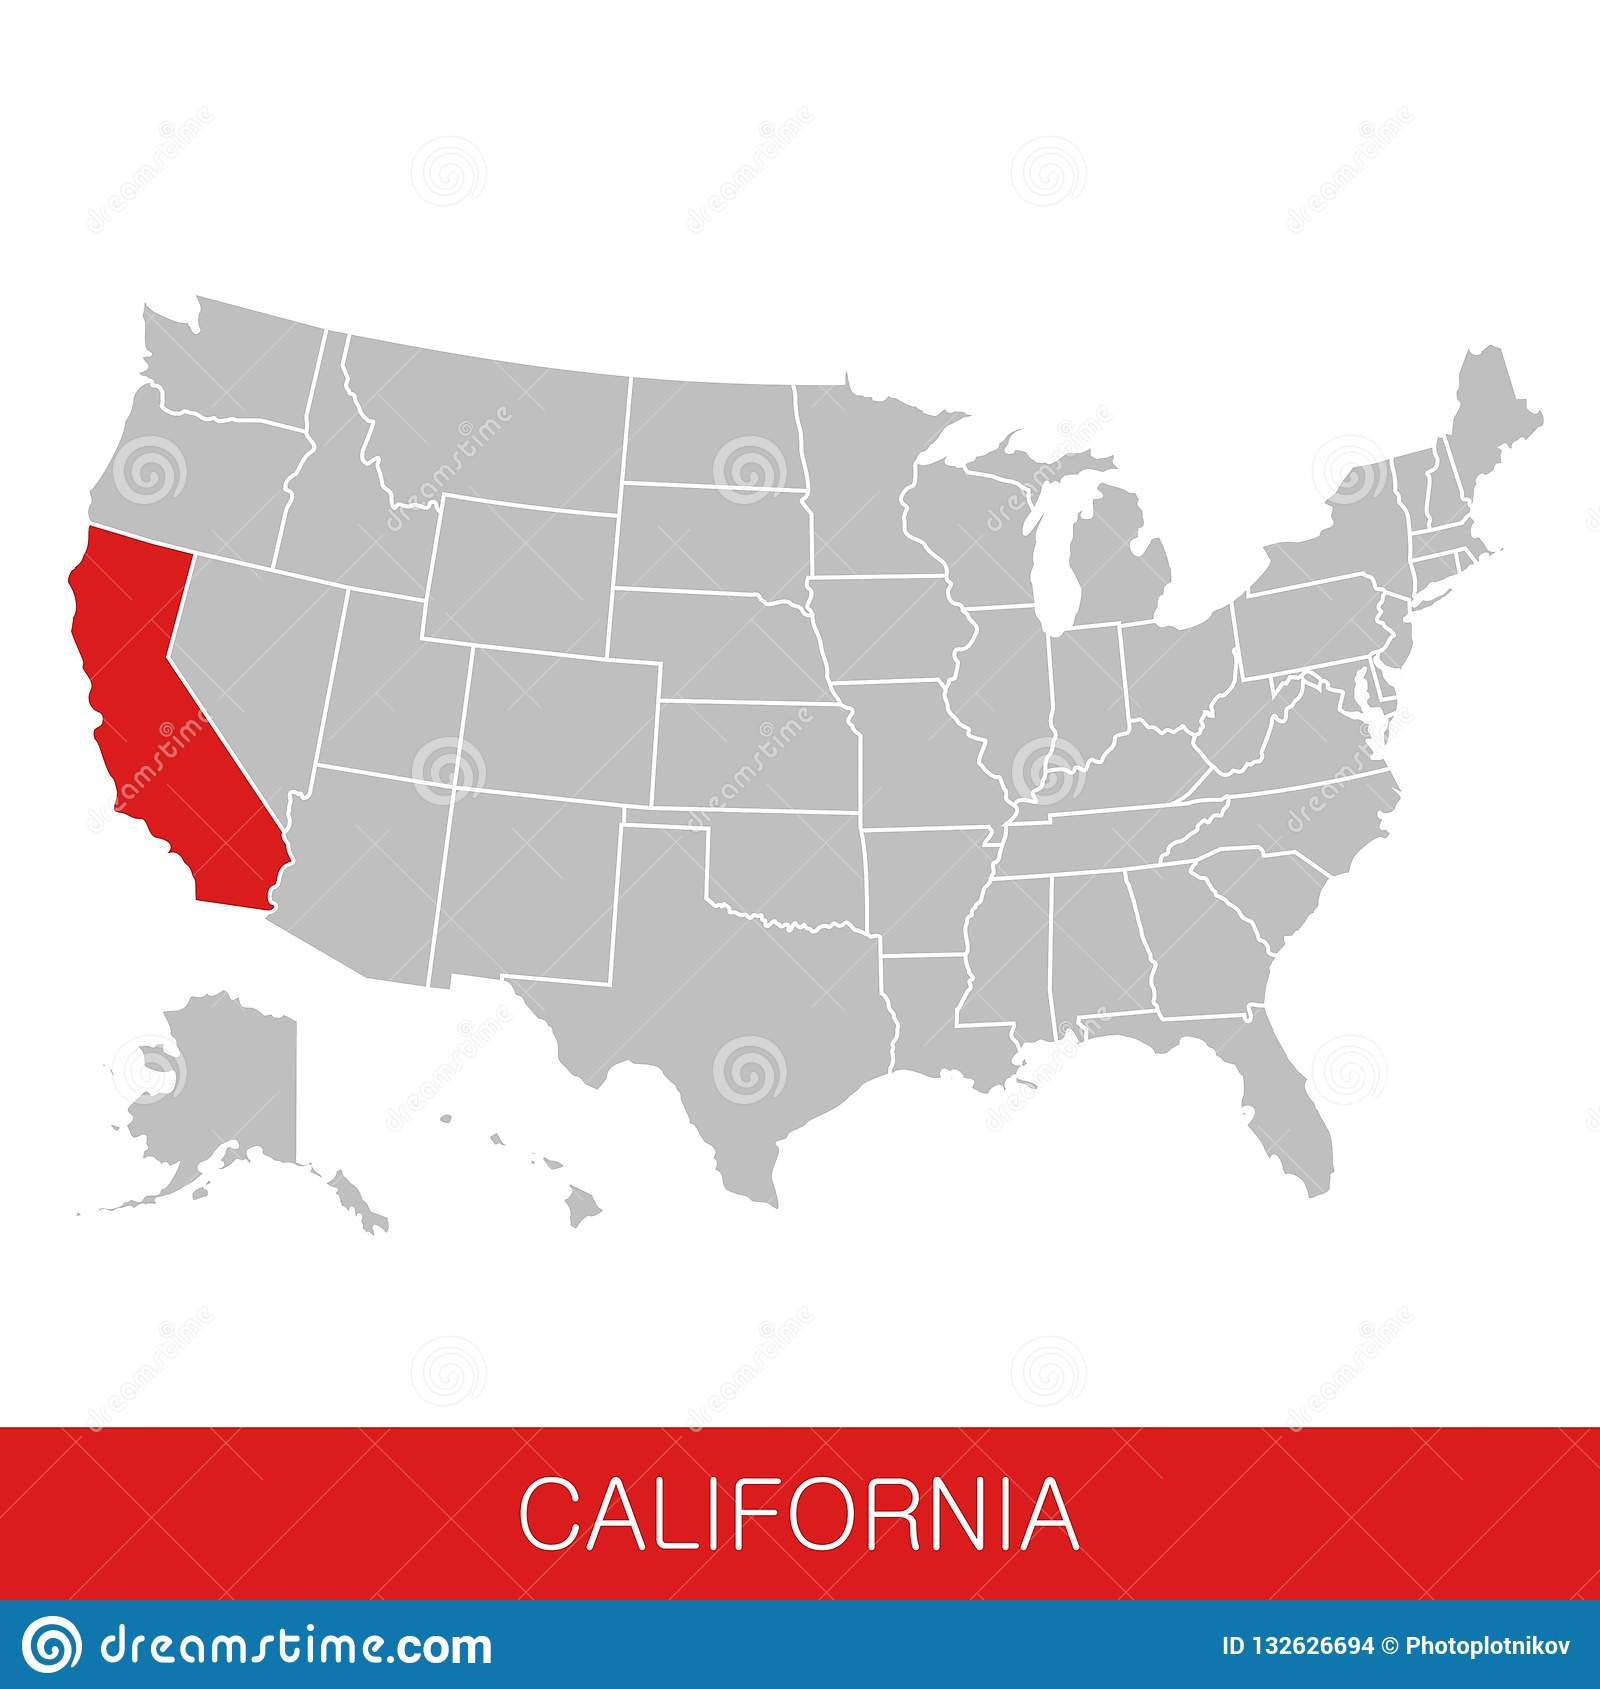 United States Of America With The State Of California ... on usa map oregon, usa map montana, usa map iowa, usa map new york, usa map alaska, usa map georgia, usa map maine, usa map hawaii, usa map maryland, usa map san francisco, usa map virginia, usa map connecticut, usa map vermont, usa map florida, usa map michigan, usa map at night, usa map wisconsin, usa map colorado, usa map idaho, usa map pennsylvania,